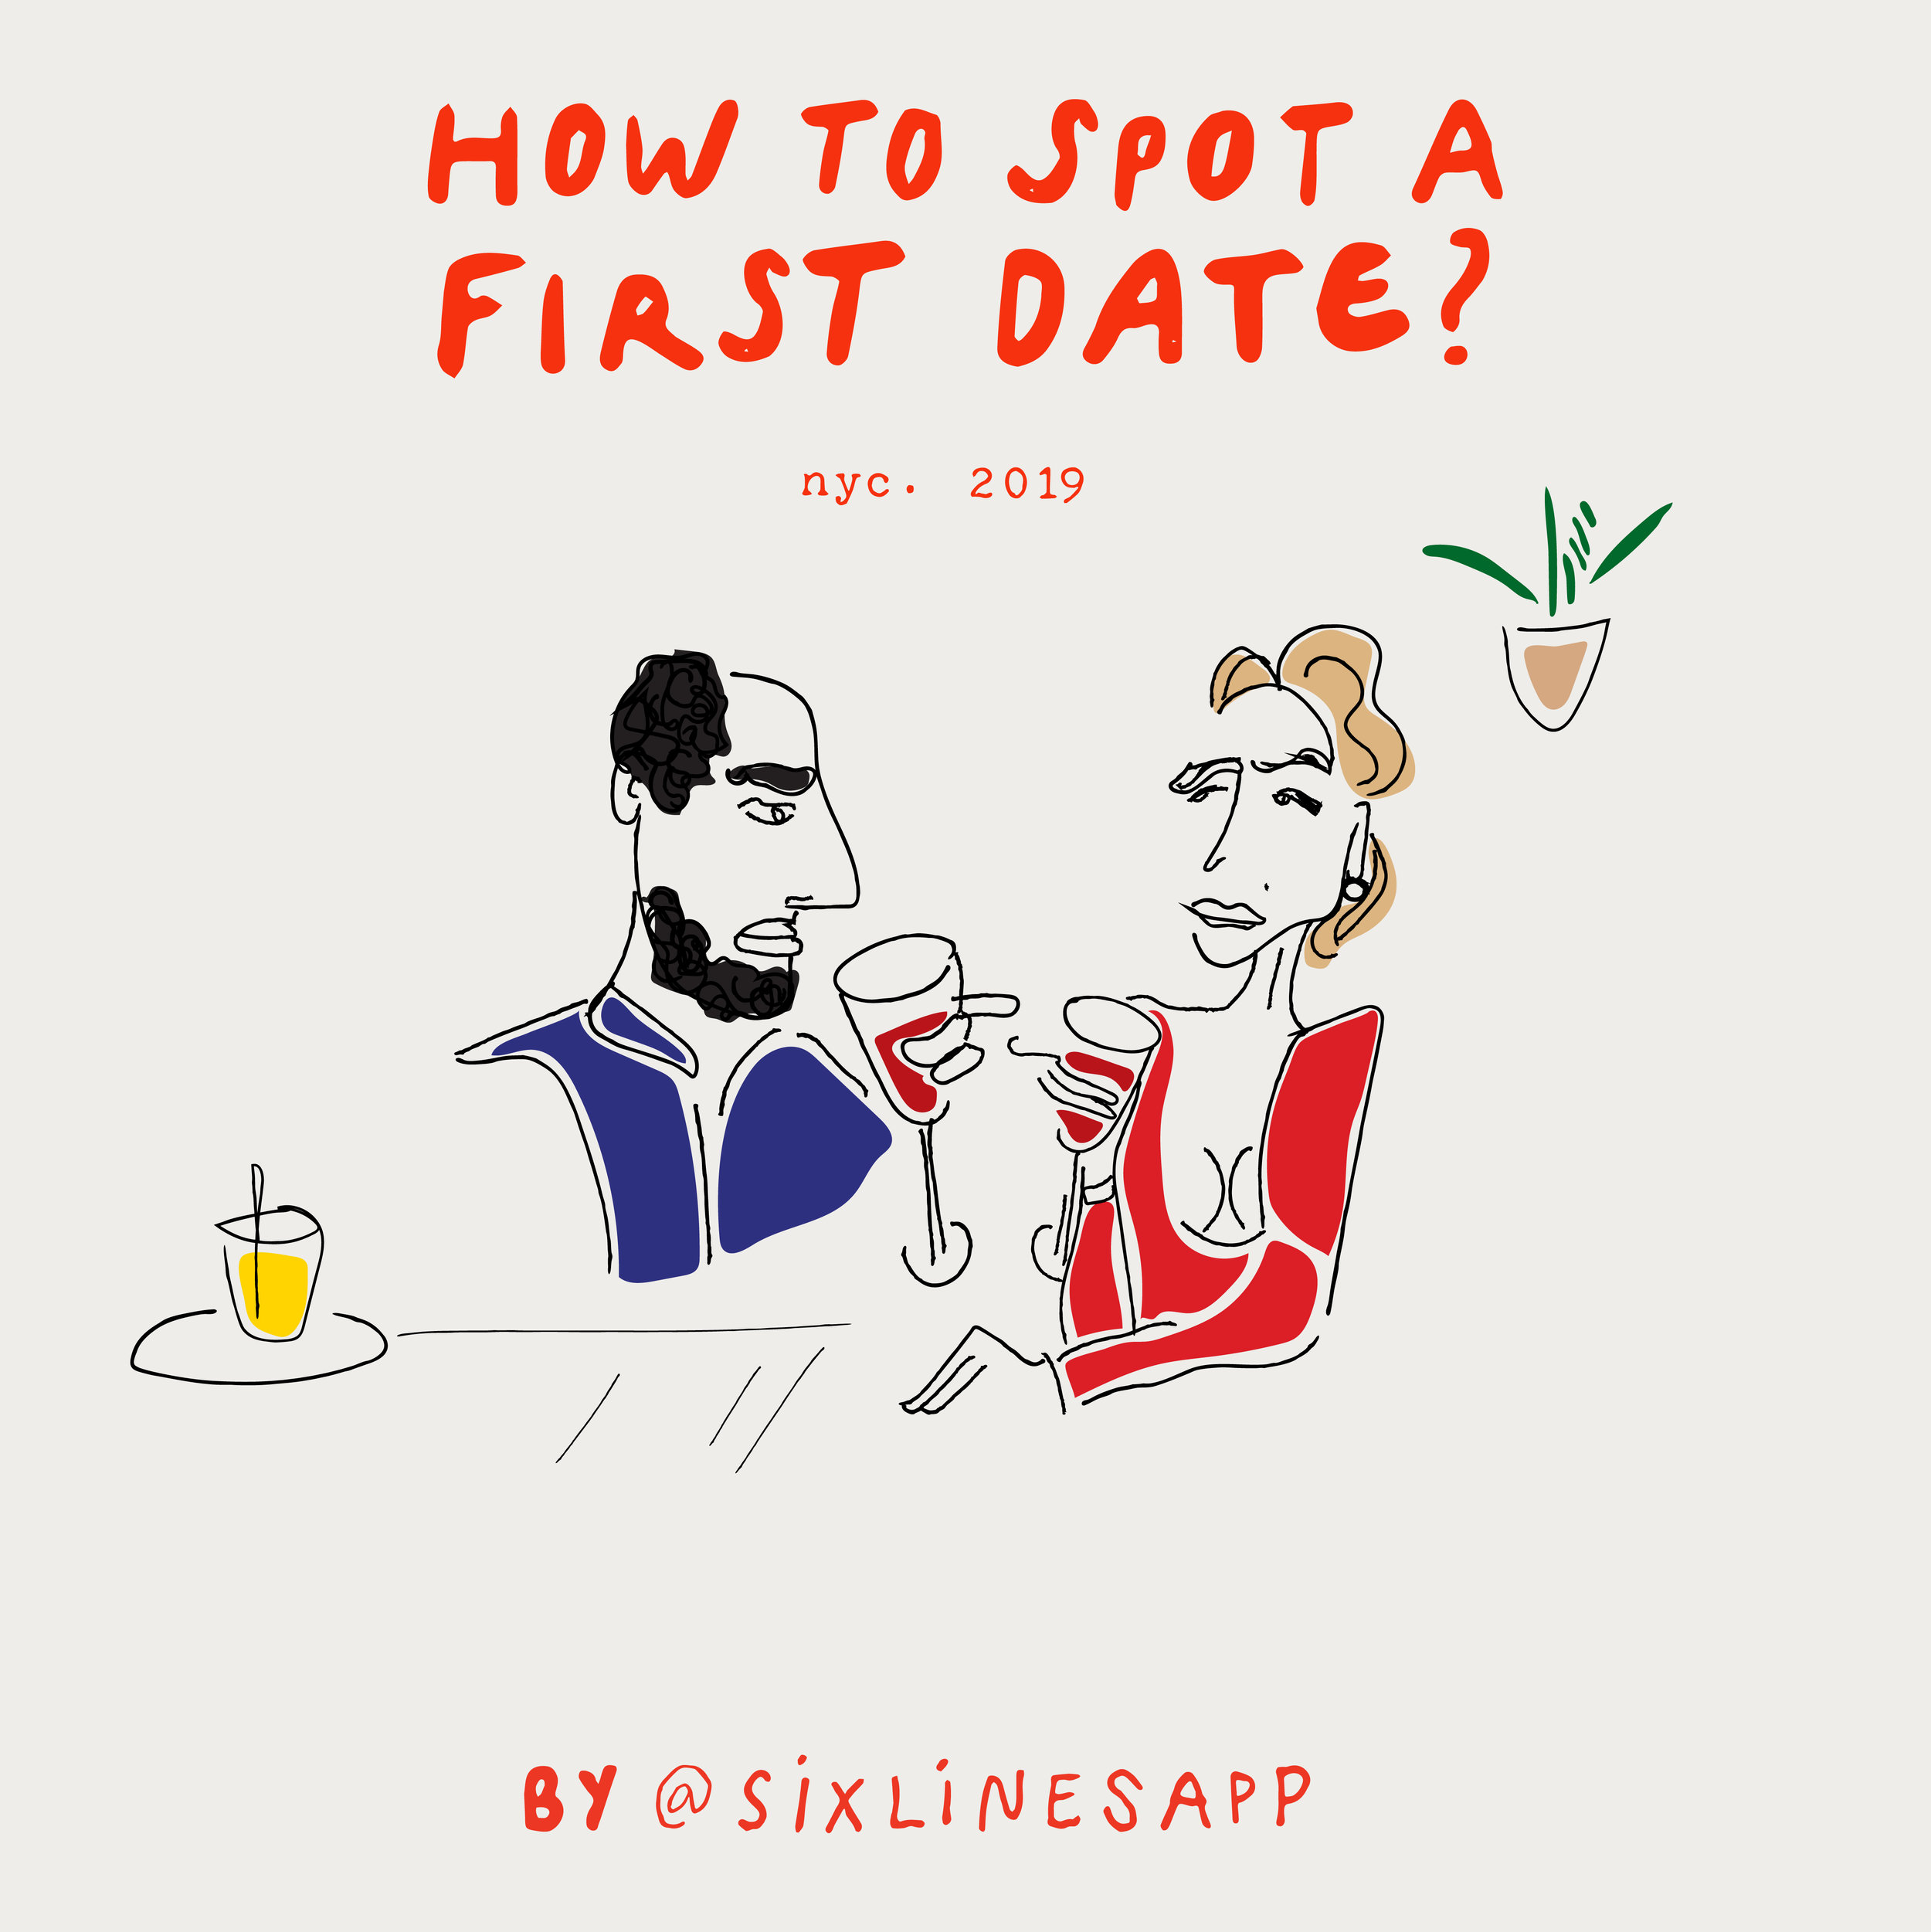 FirstDate-1080x1080.jpg